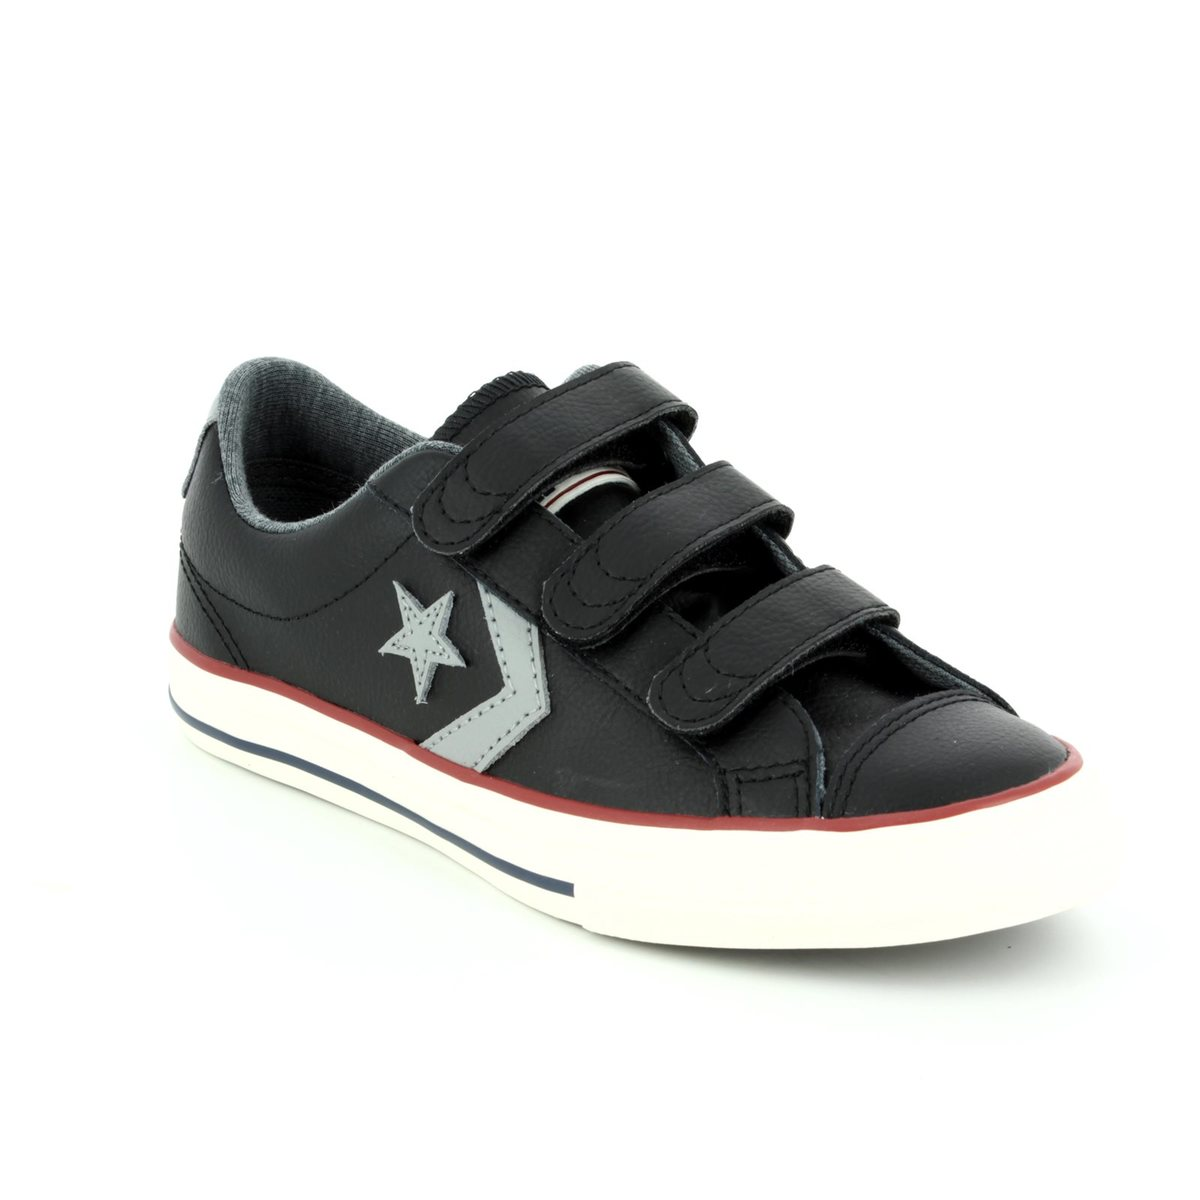 6bb7f62fbcf8 Converse Trainers - Black - 658155C 001 STAR PLAYER EV 3V OX Velcro